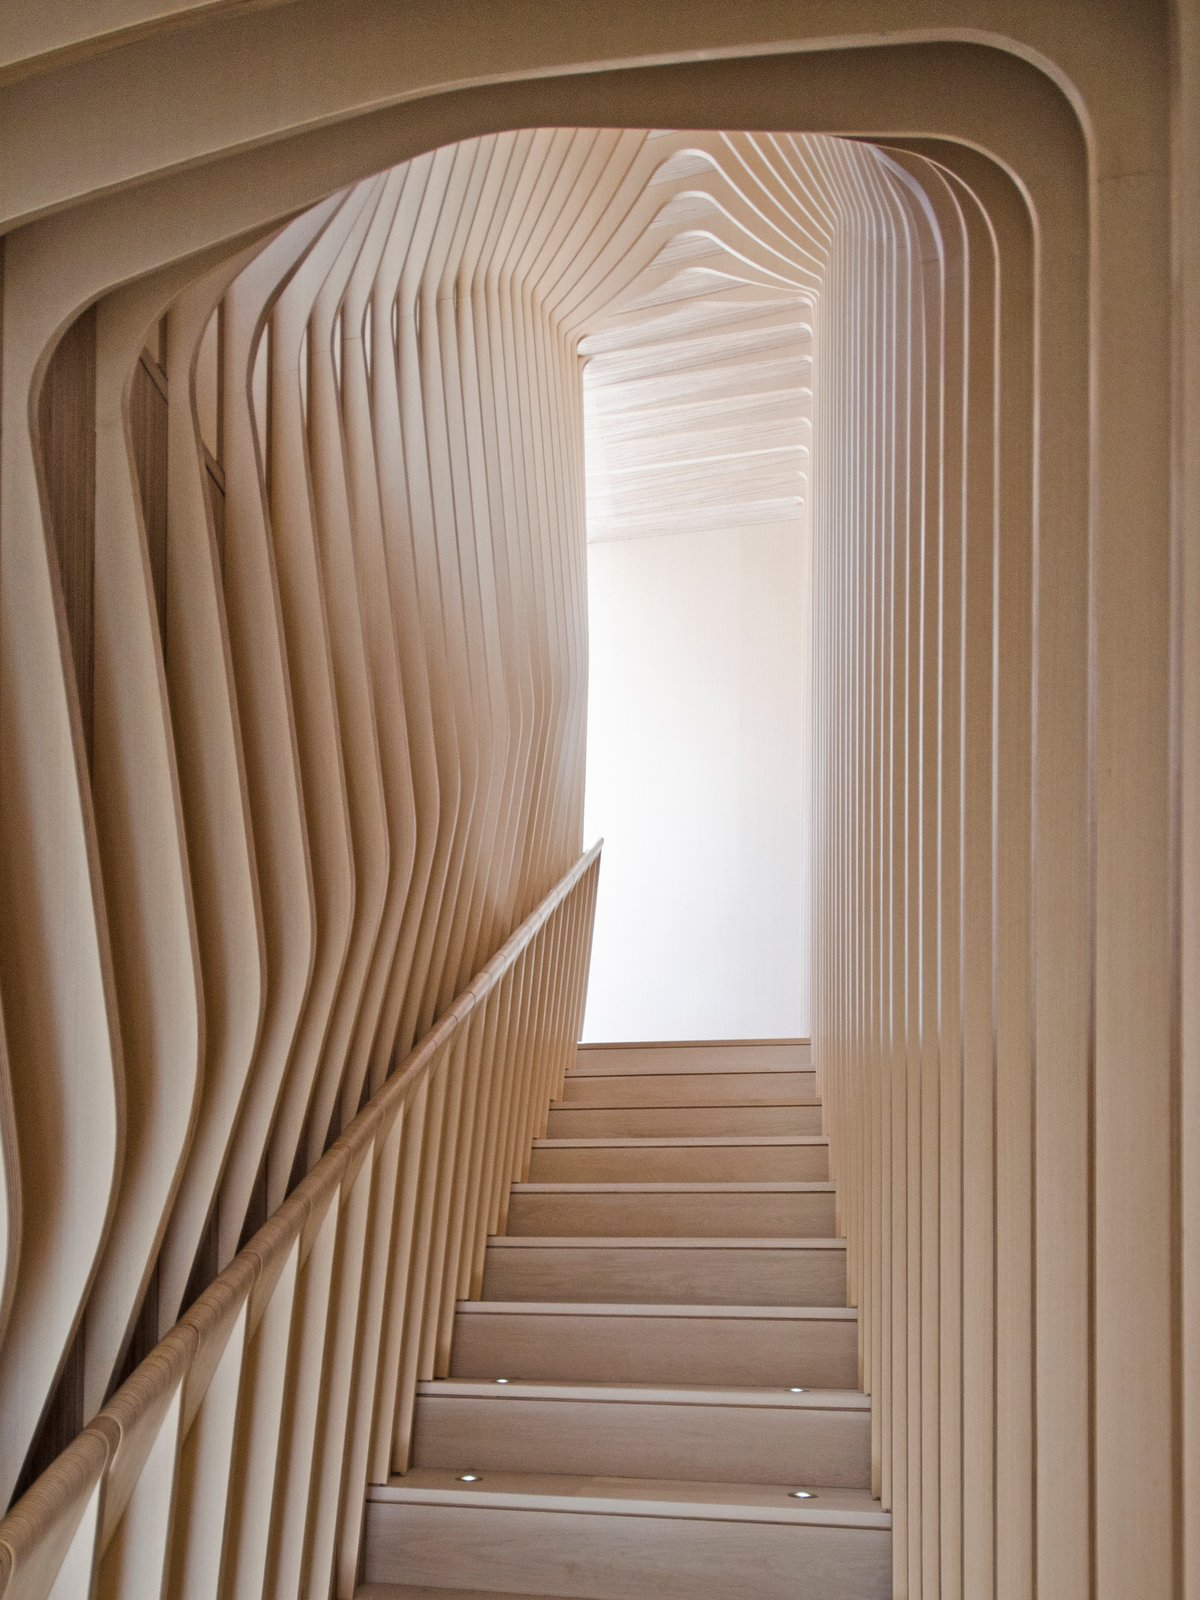 To breathe new life into a historic brick home, architect Nader Tehrani of NADAAA used precision-cut plywood for the interiors and two sculptural staircases with an undulating grotto effect.    Photo 11 of 30 in 30 Comforting Interiors That Have Us Pining for Plywood from House of the Week: Plywood Perfection